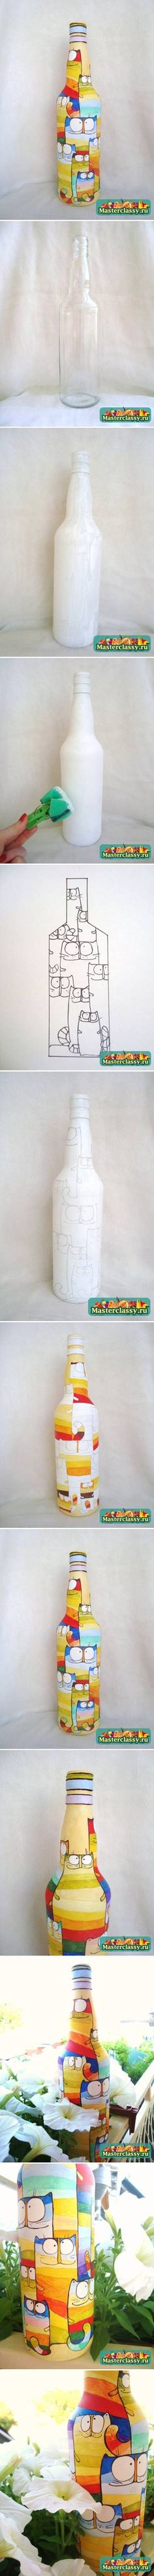 DIY Bottle of Acrylic Cat Painting, How to, how to make, step by step, picture tutorials, diy instructions, craft, do it yourself